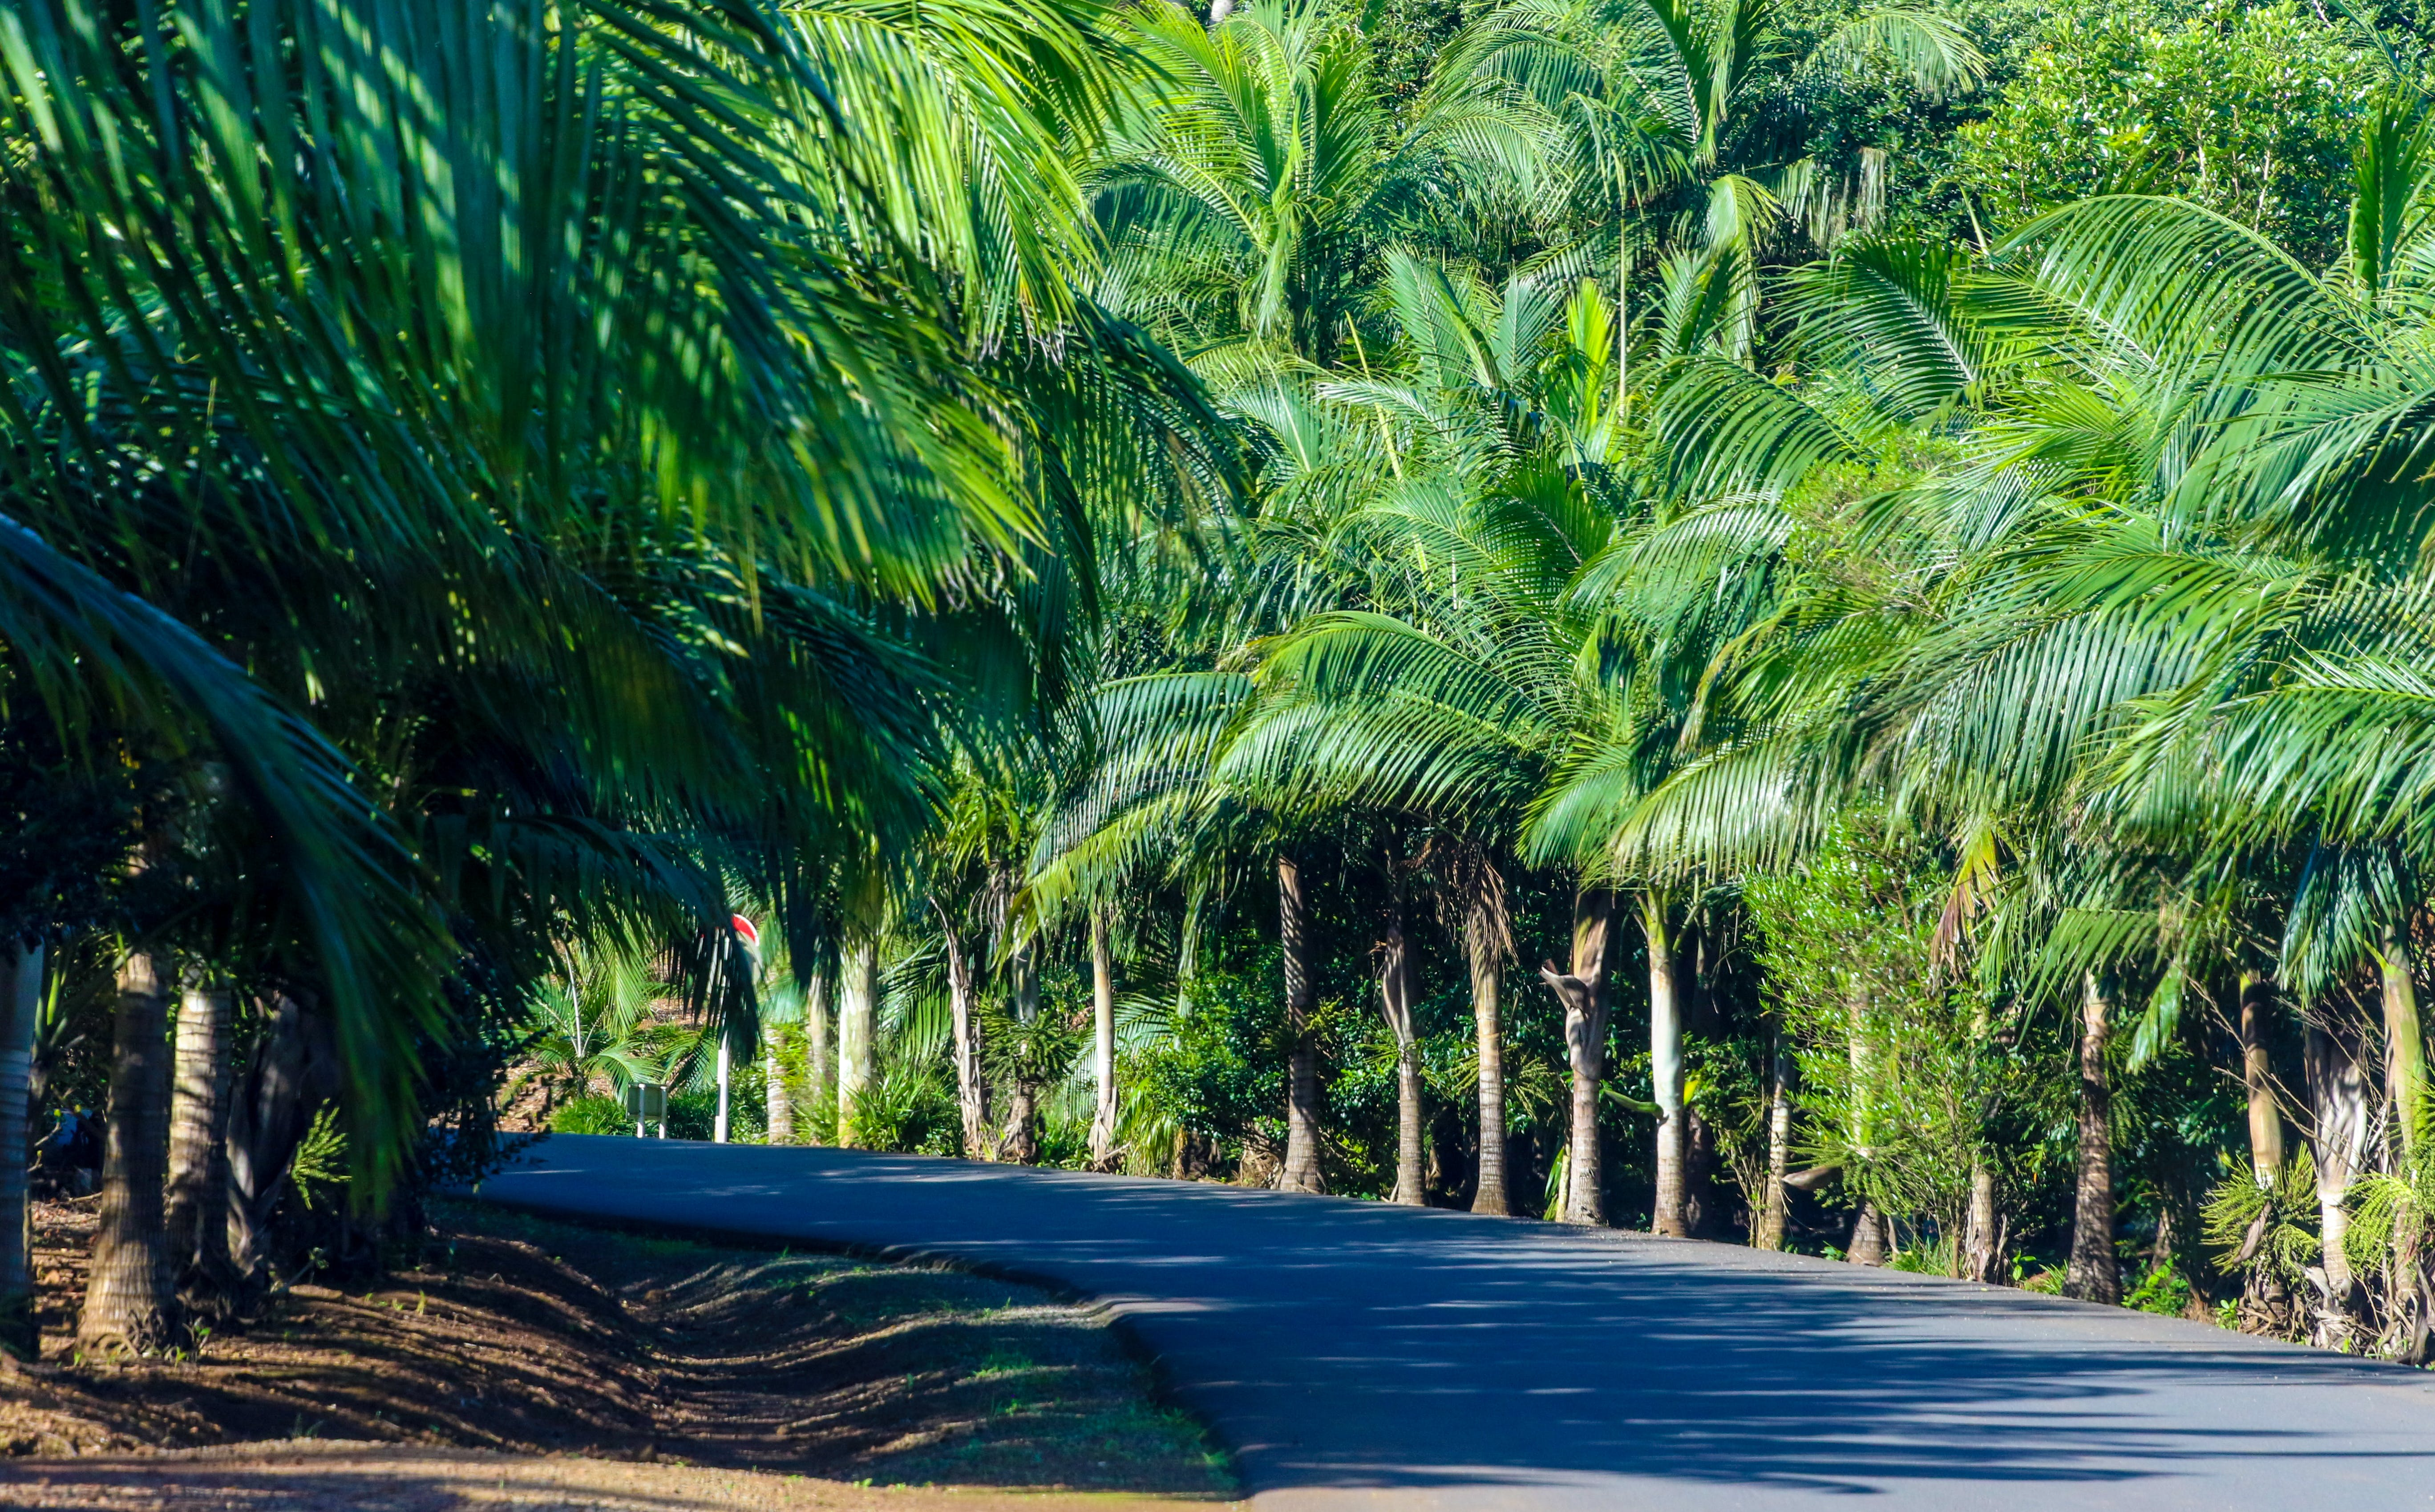 Gray Concrete Road Between Green Palm Tress